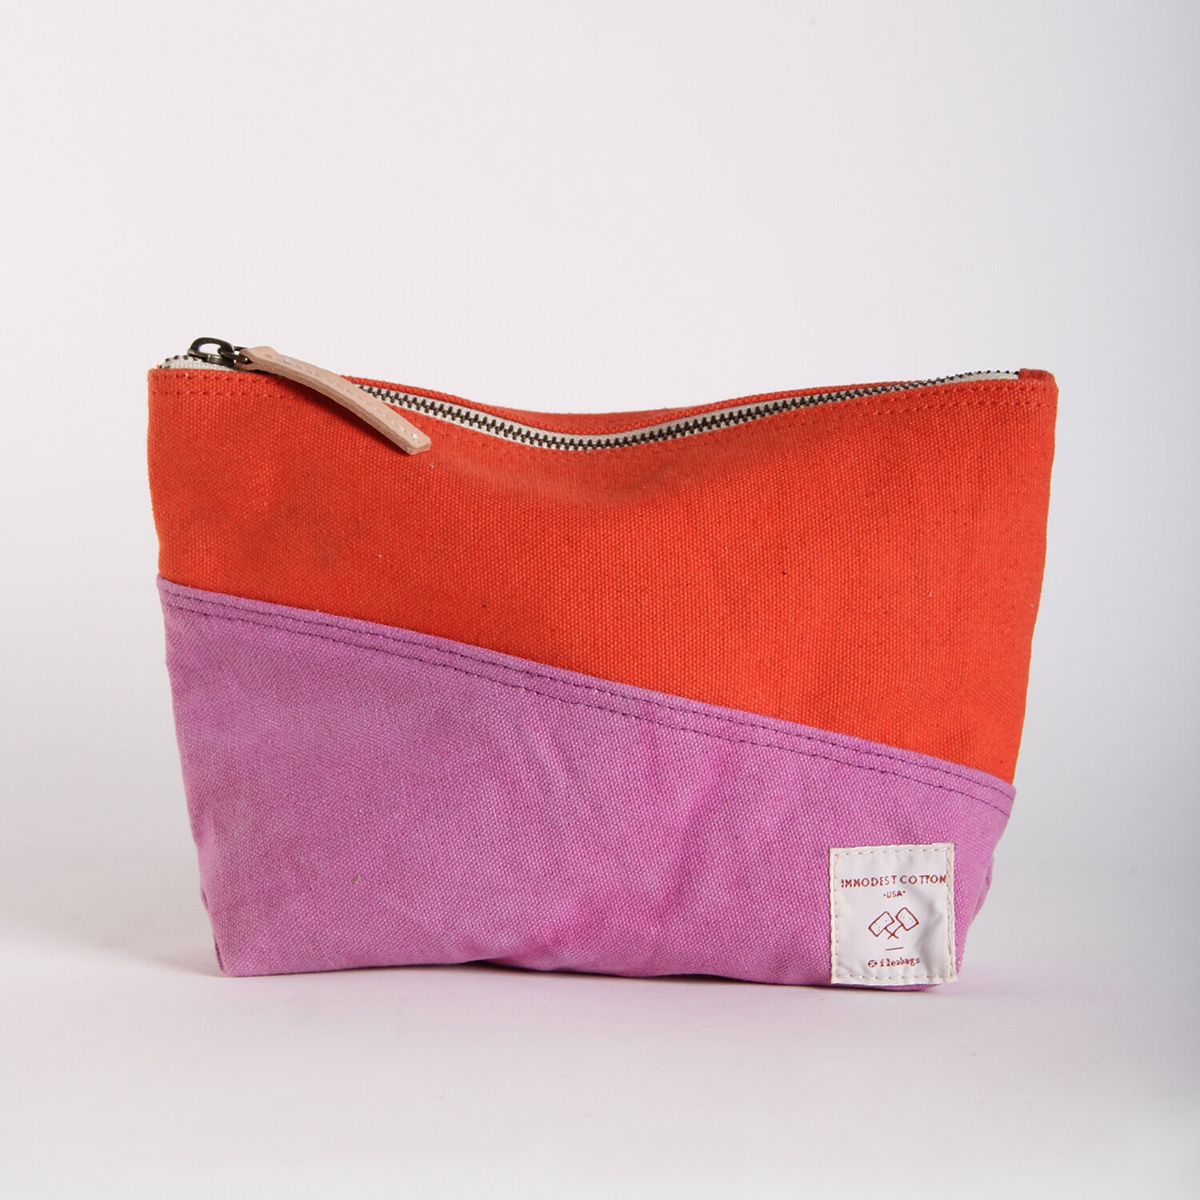 IMMODEST COTTON x Fleabags Bicolor Sardine Pouch, Rhubarb